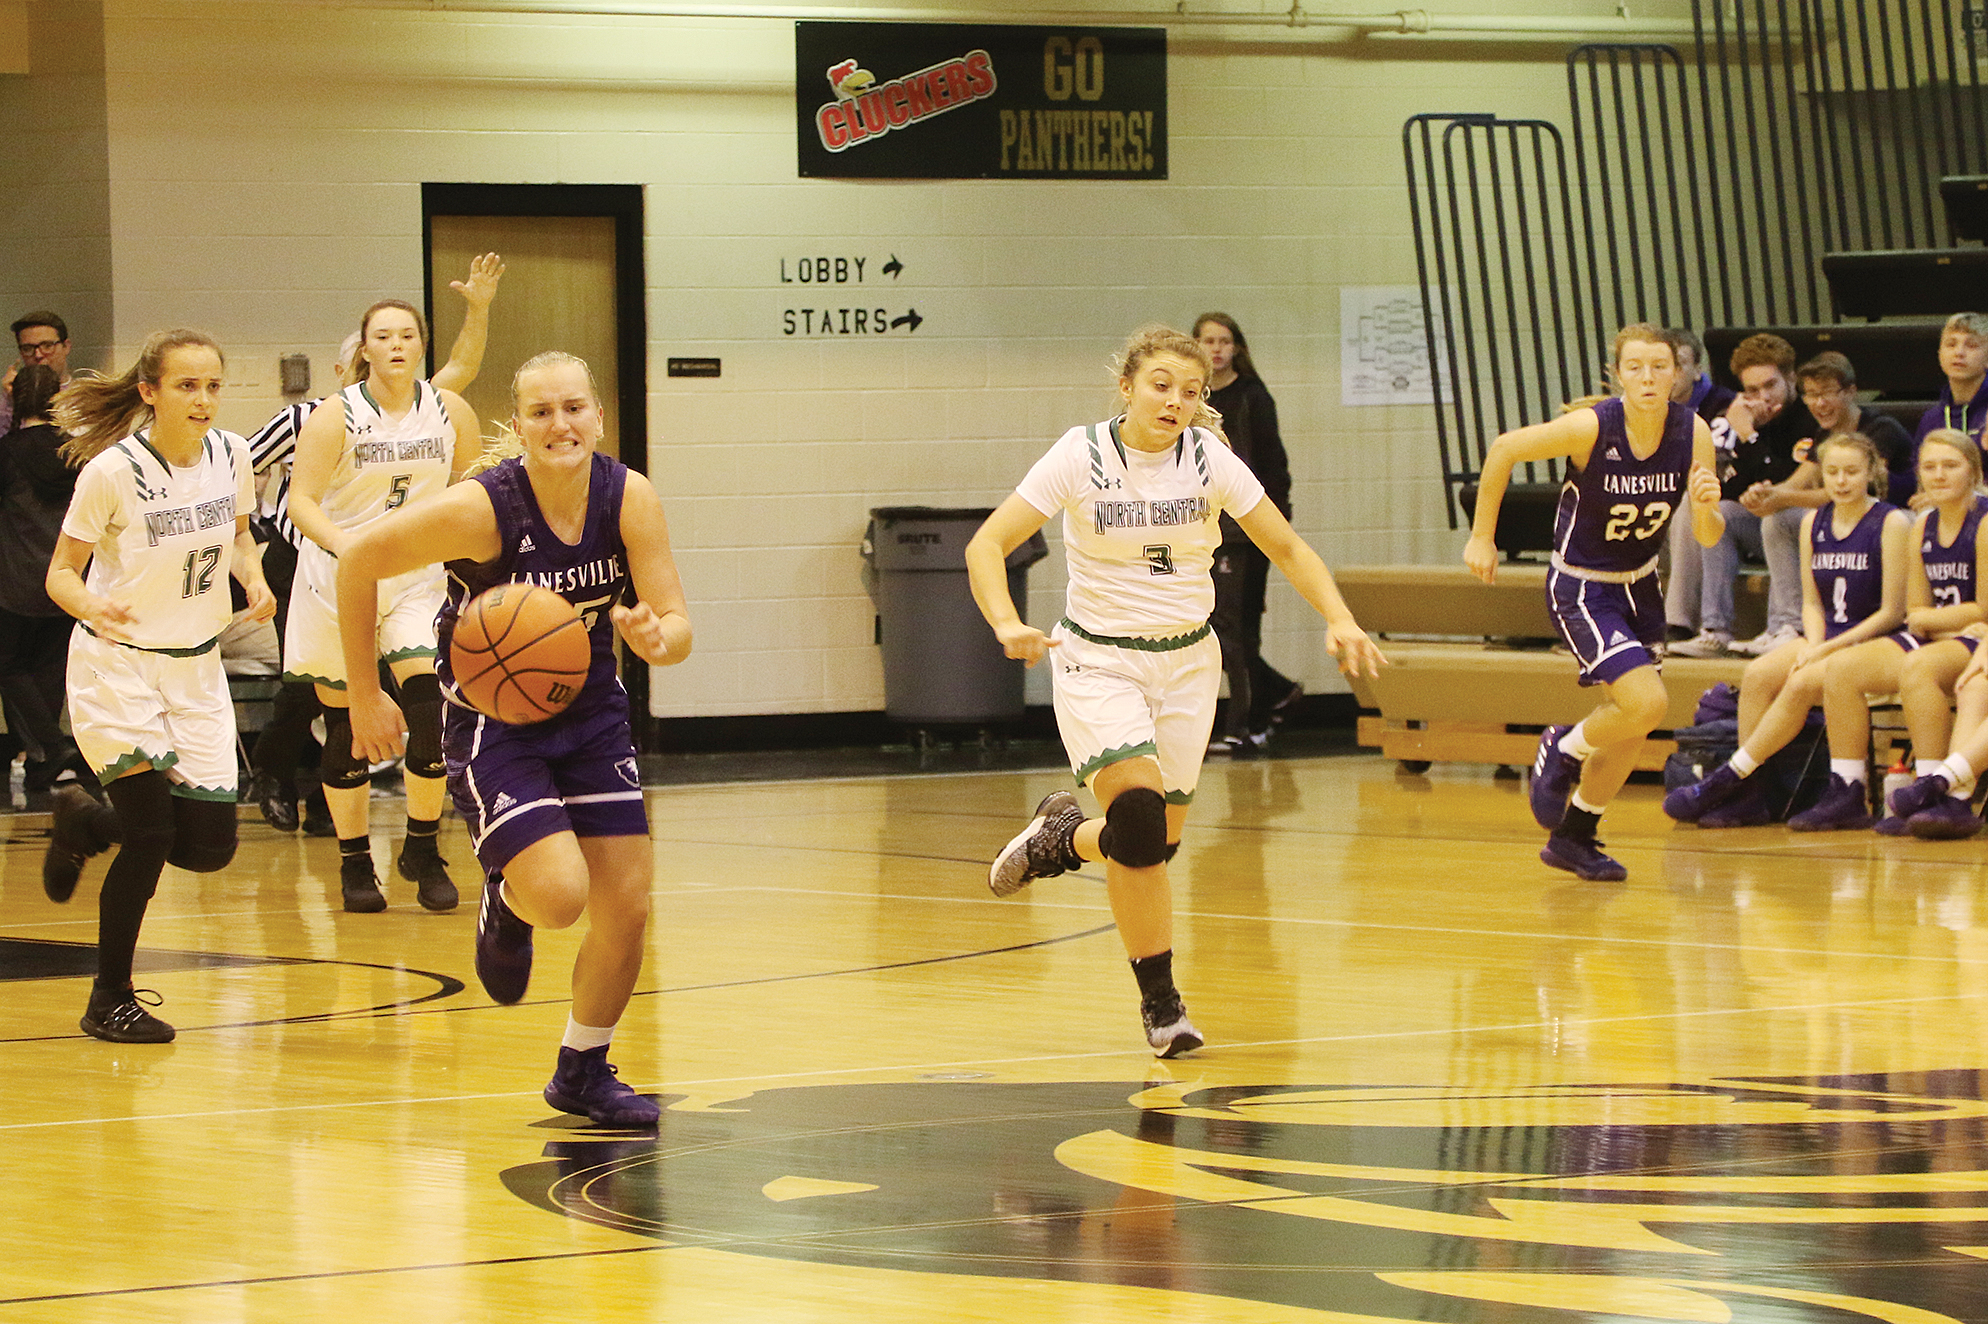 North Central holds off Lanesville for third place